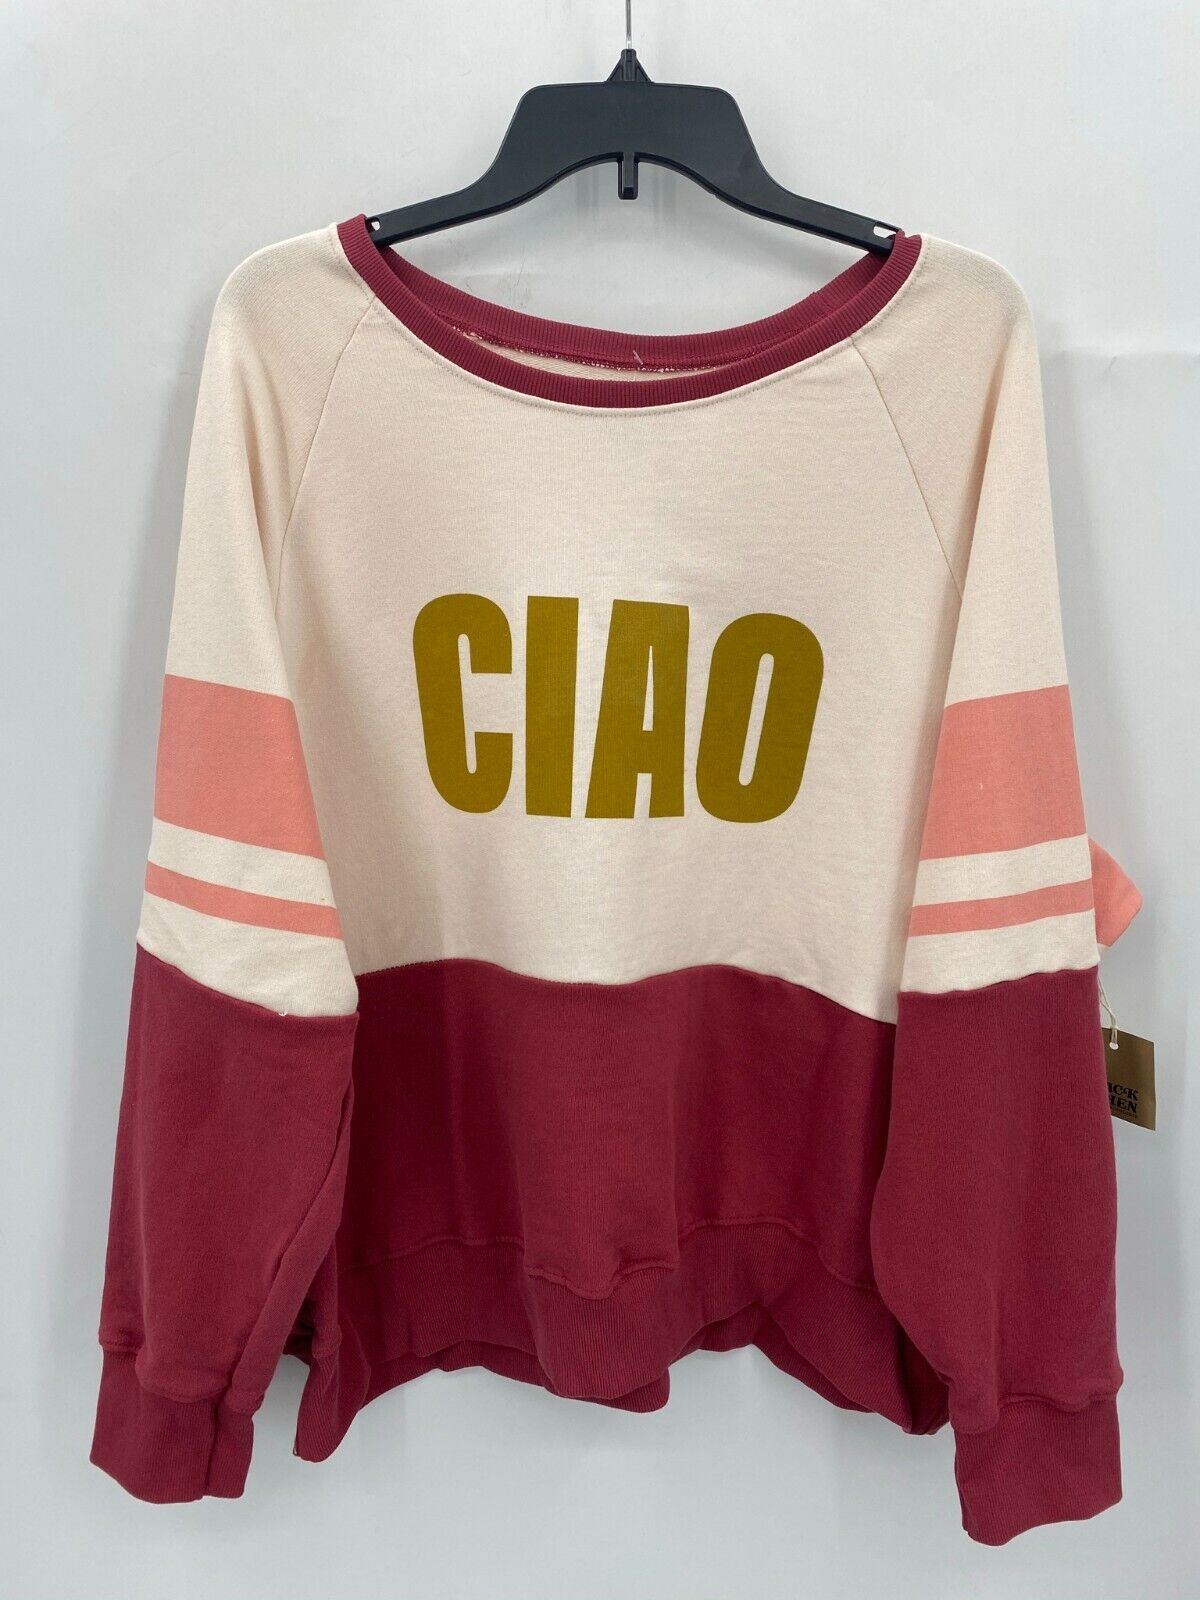 Anthropologie Back When Plus 1X Ciao Graphic Sweatshirt Pink Colorblock NWT